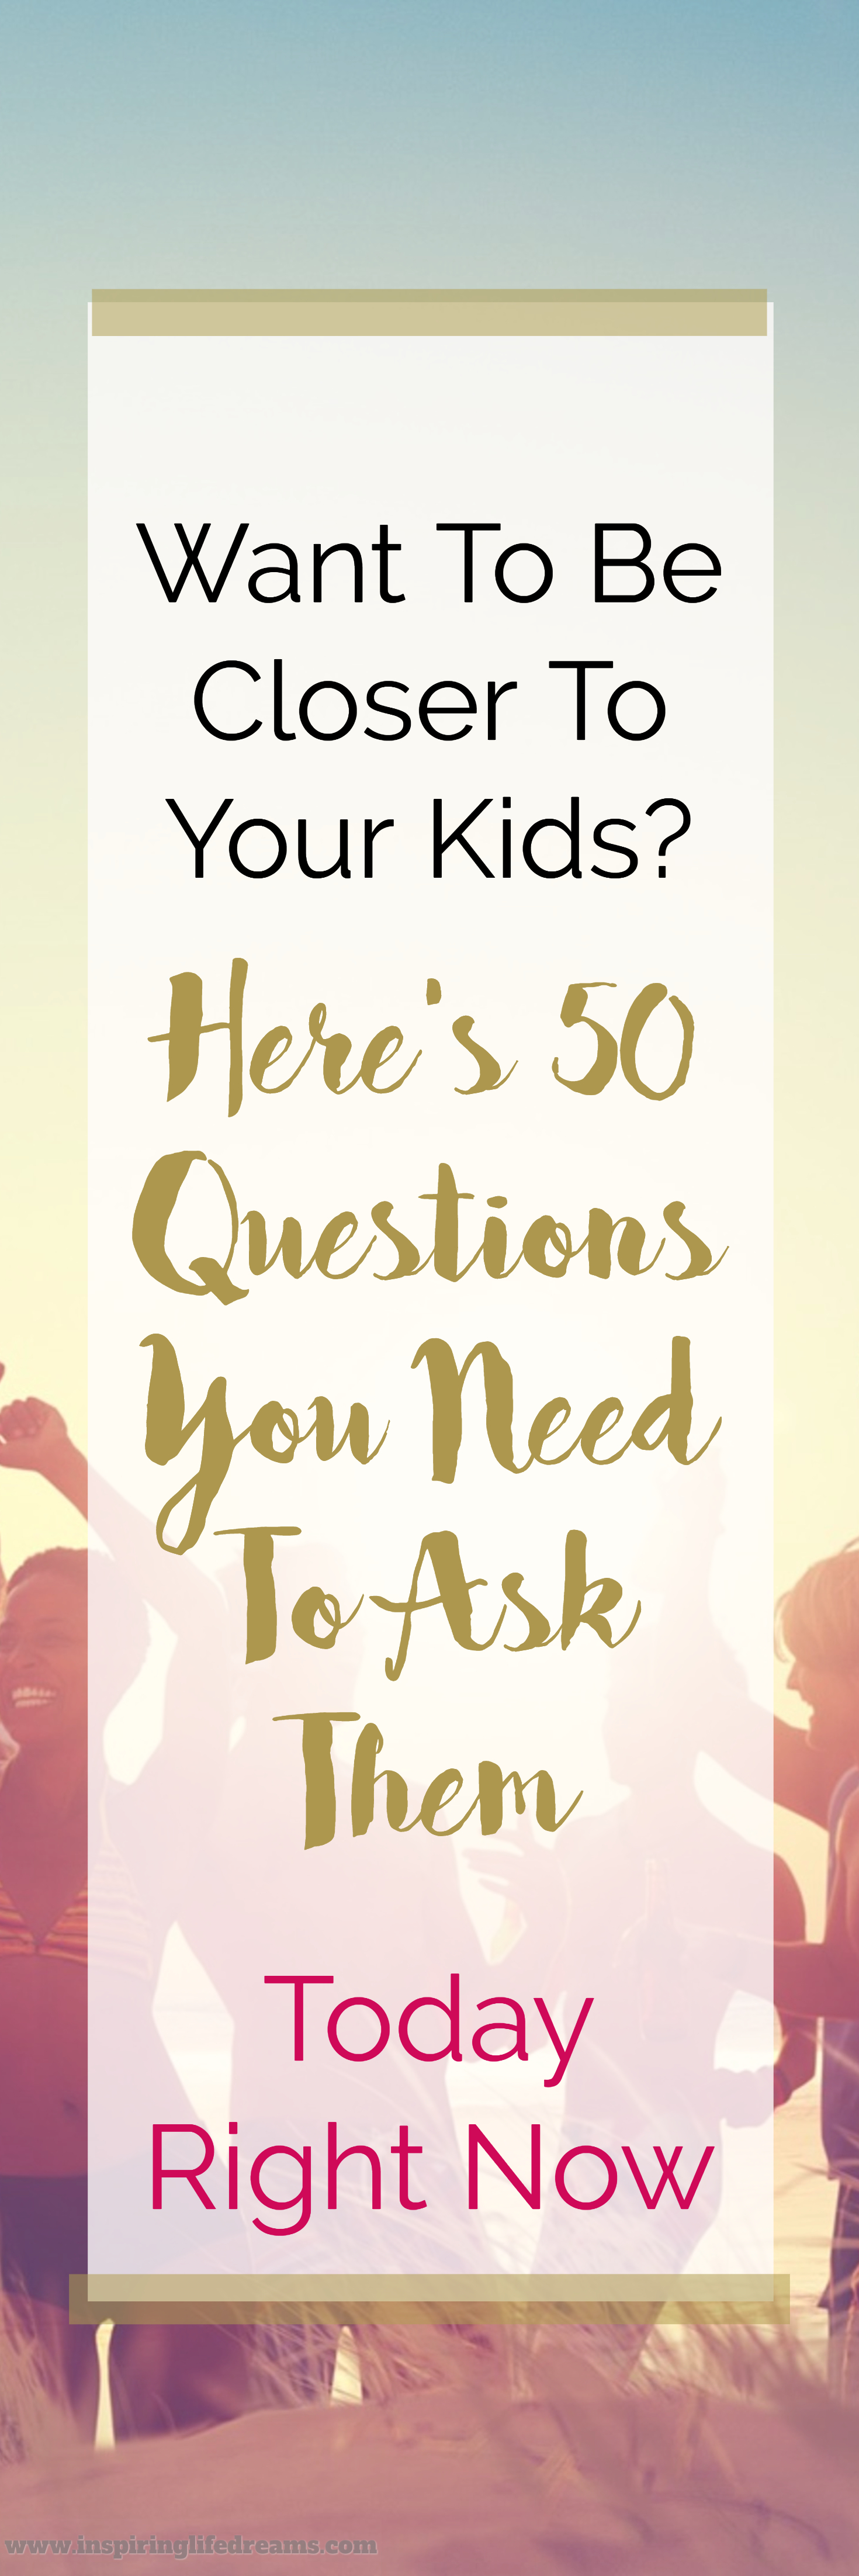 50 Fun Questions To Ask Your Kids